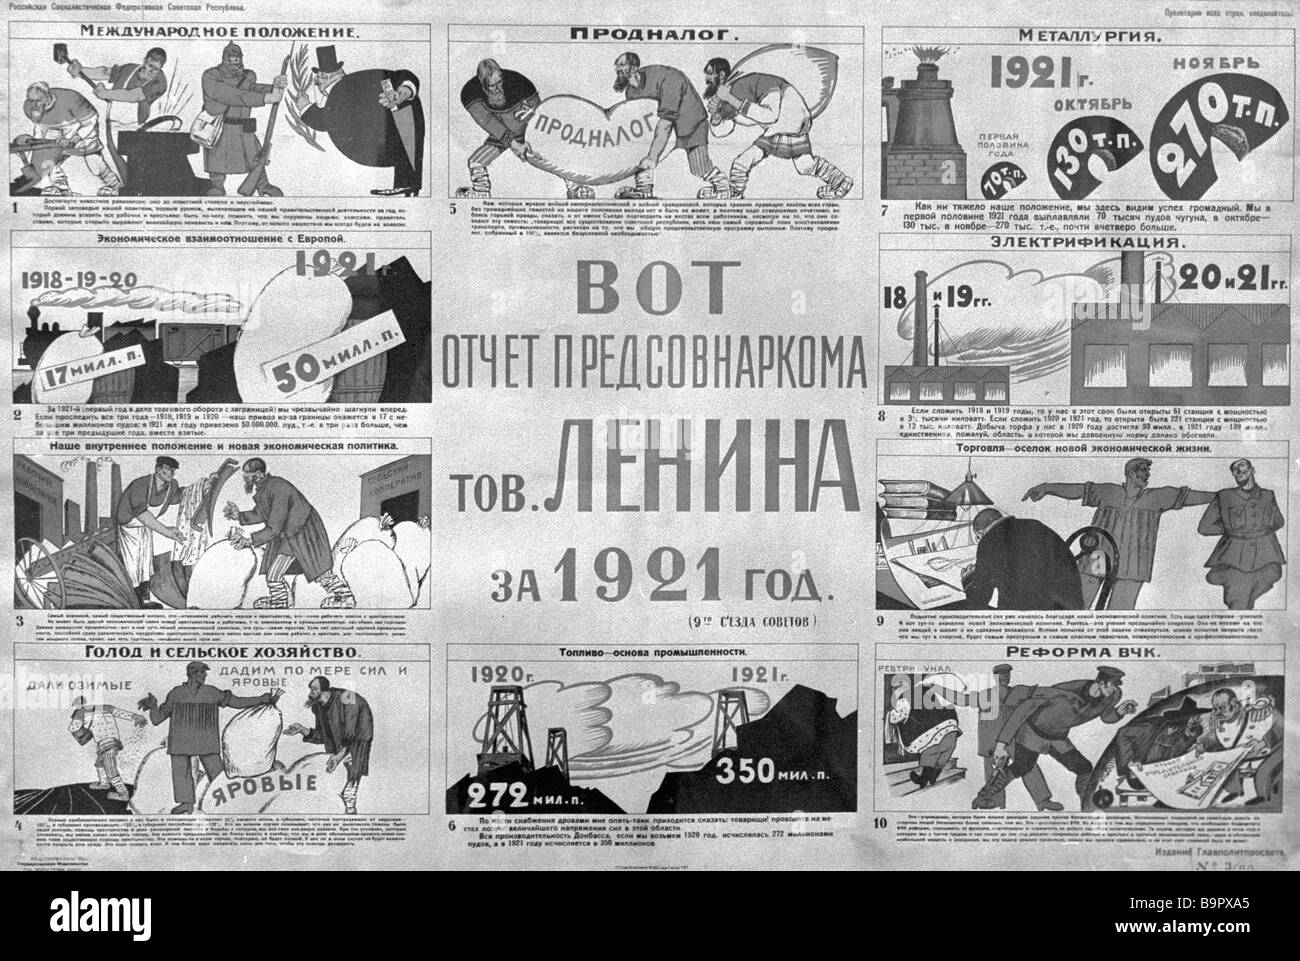 A reproduction of a poster by Mikhail Cheremnykh 1921 - Stock Image